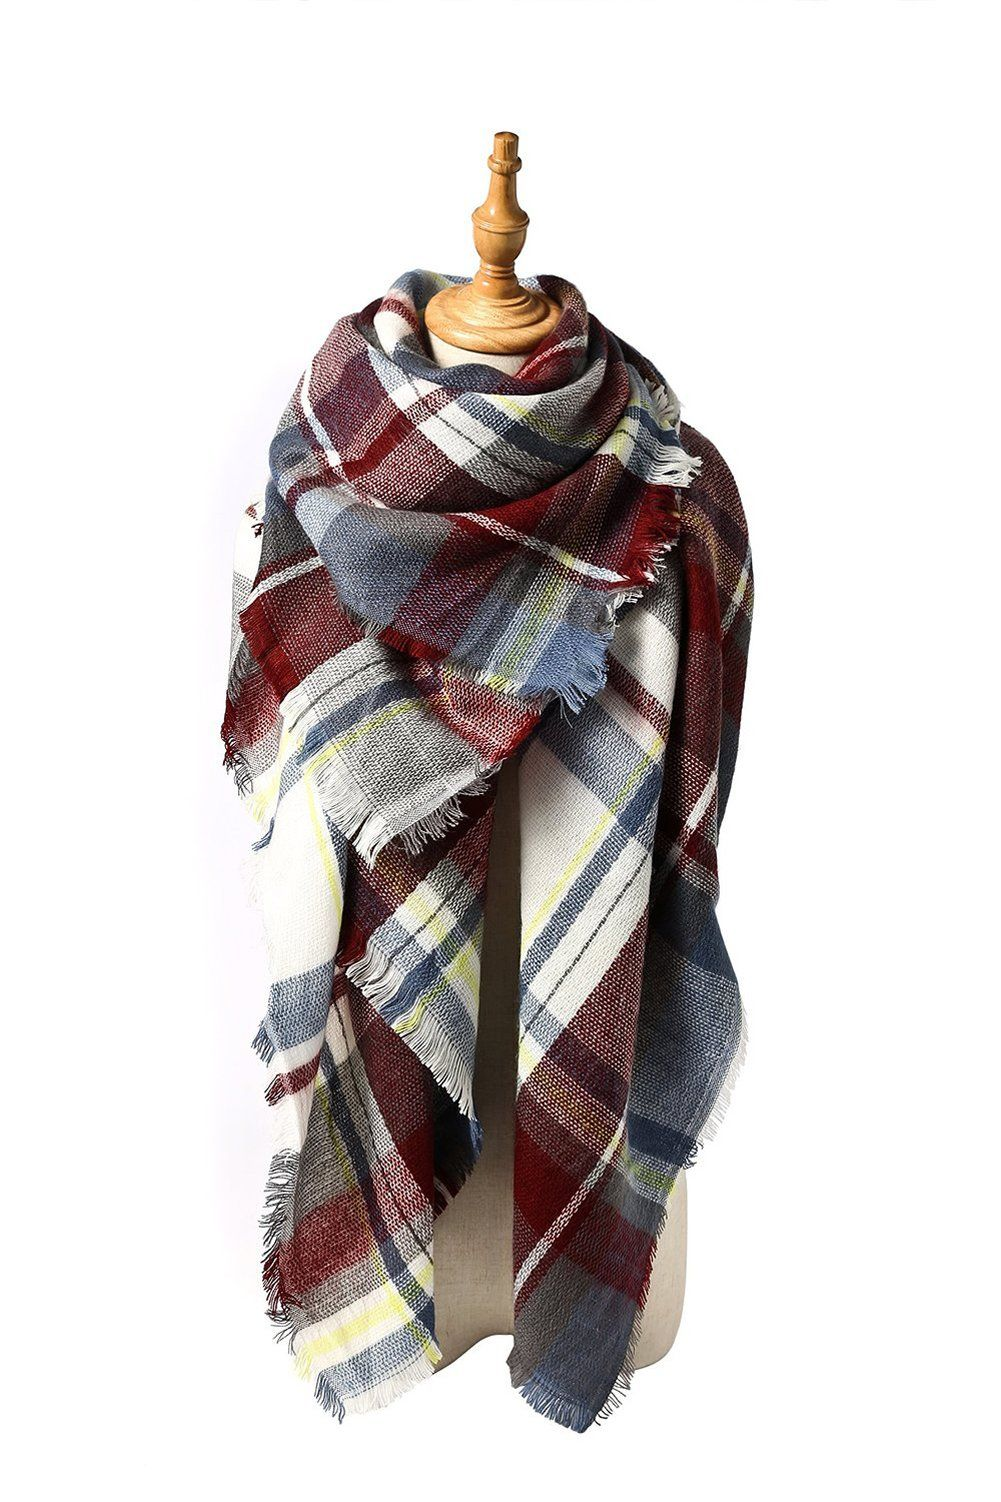 MOLERANI Women's Tassels Soft Plaid Tartan Scarf Winter Large Blanket Wrap Shawl